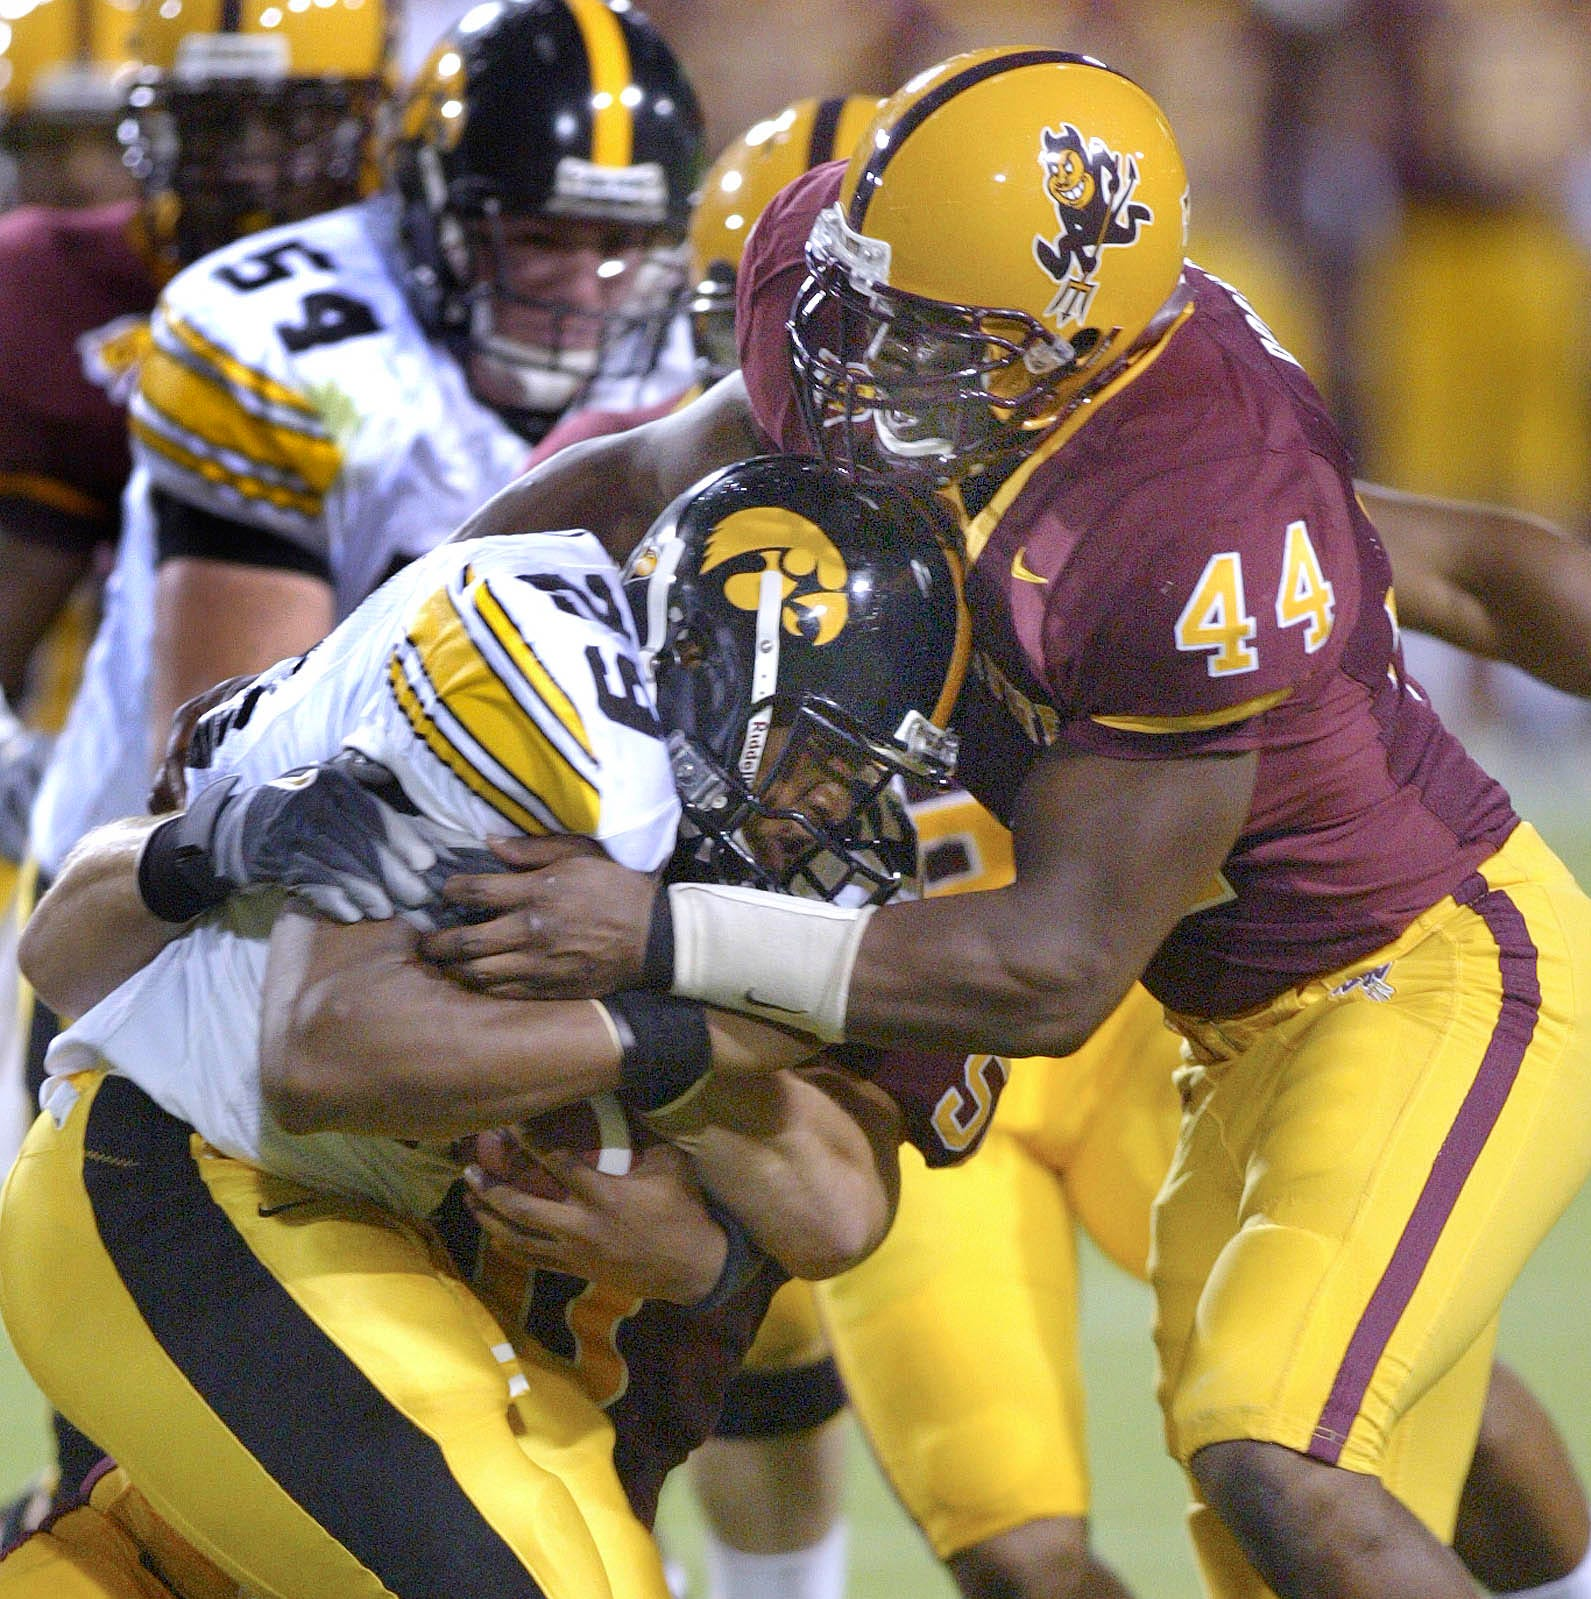 For Big Ten football teams, playing at Sun Devil Stadium is game of thorns